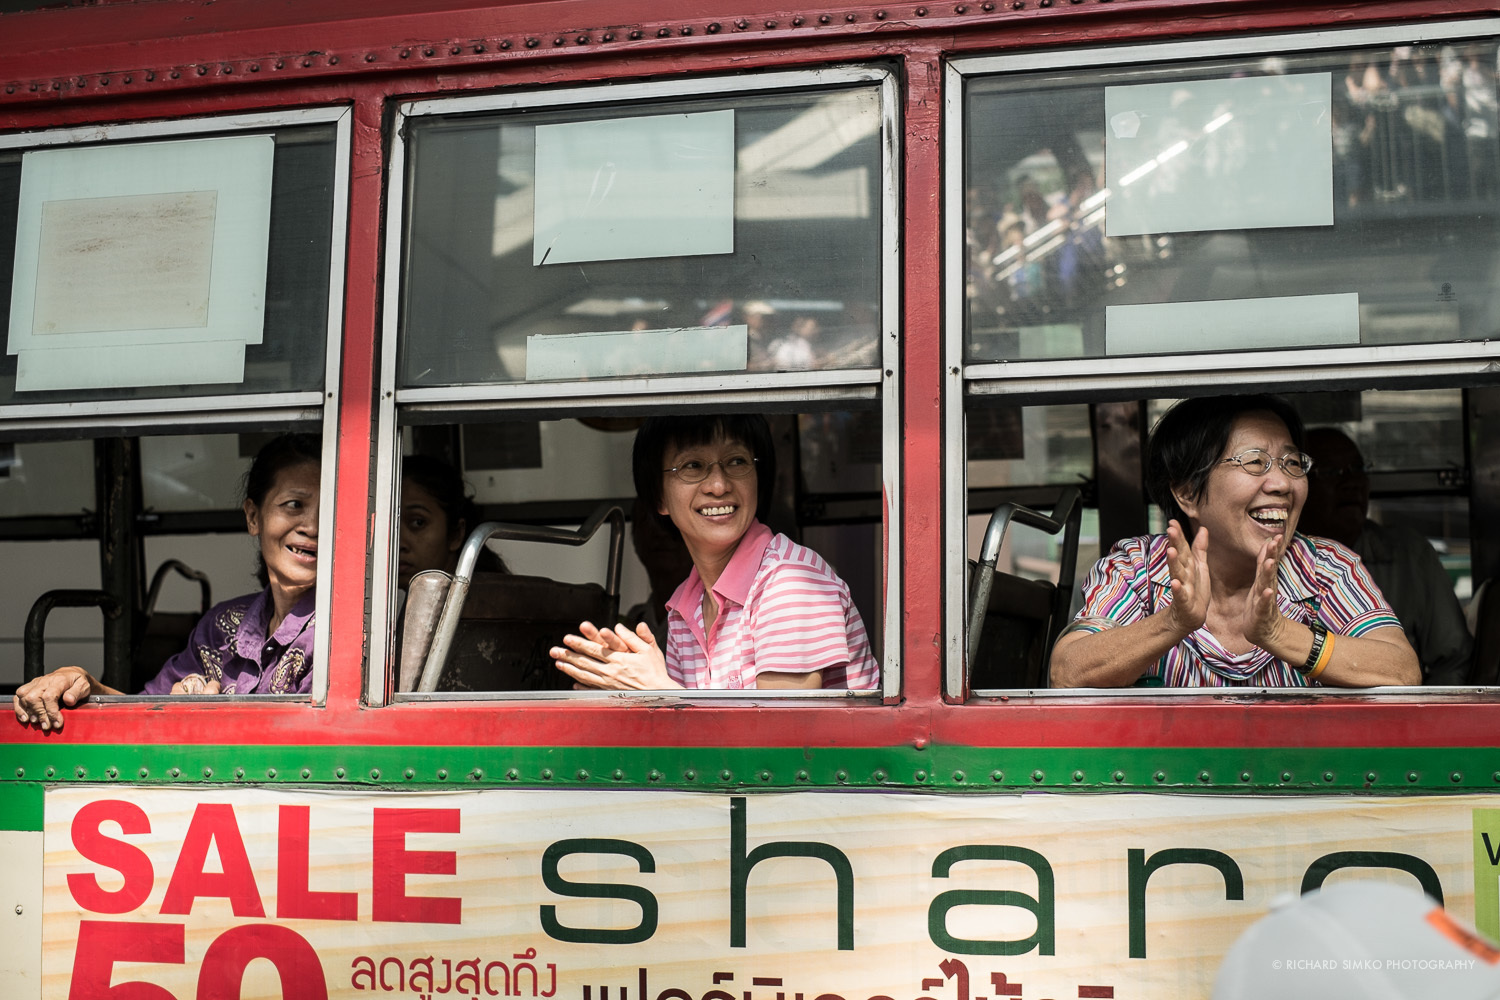 Bus passenger watch the protesters and cheering while bus got caught in gridlocked traffic in Asok.